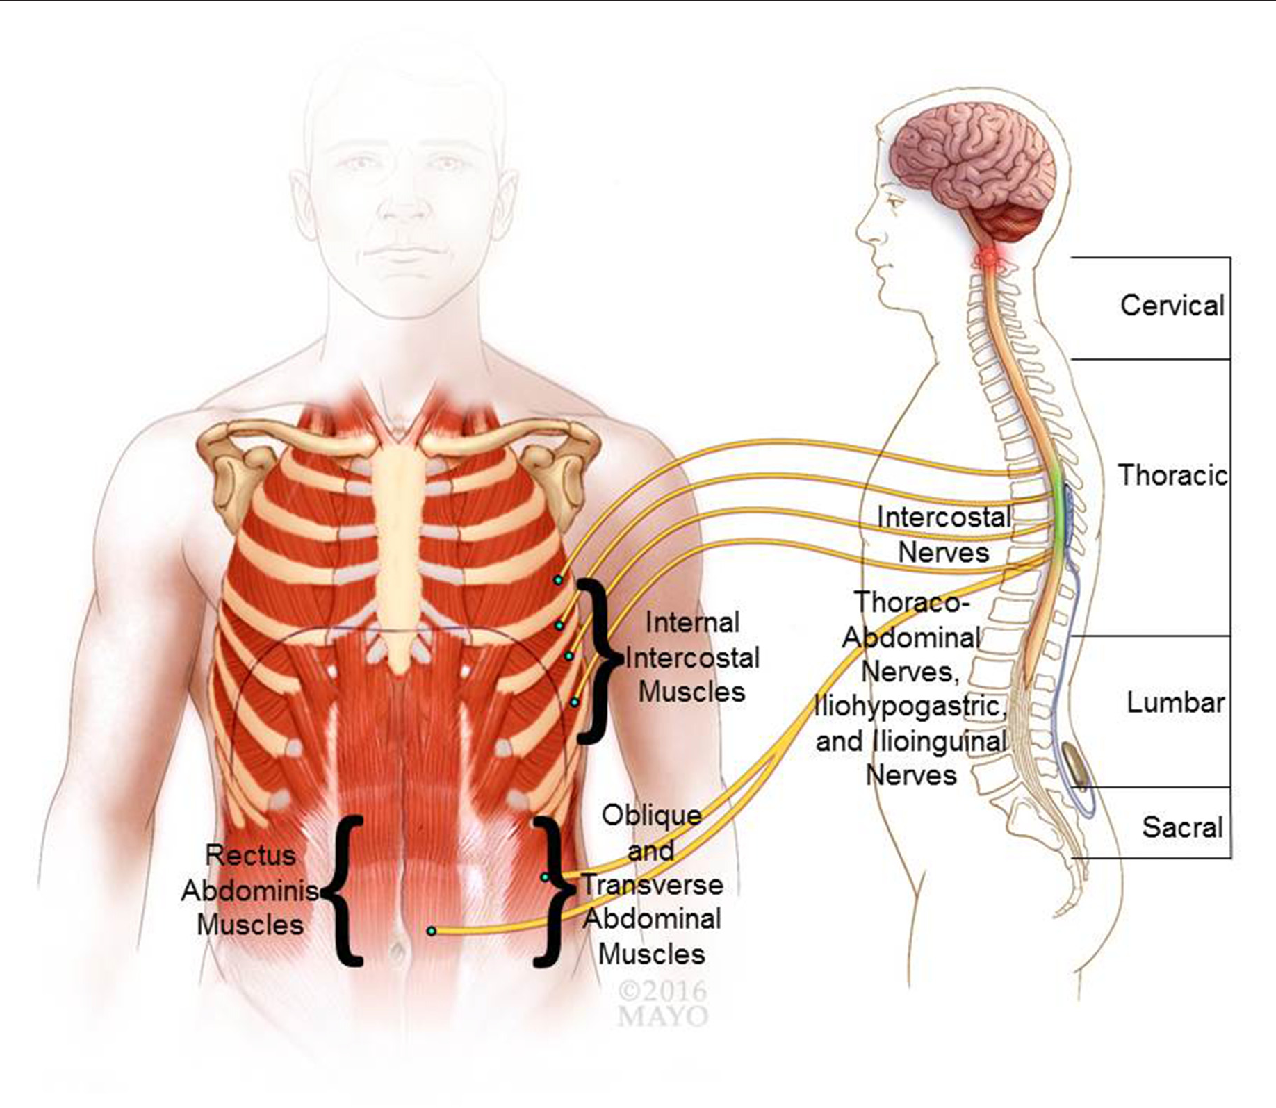 Review Of Epidural Spinal Cord Stimulation For Augmenting Cough